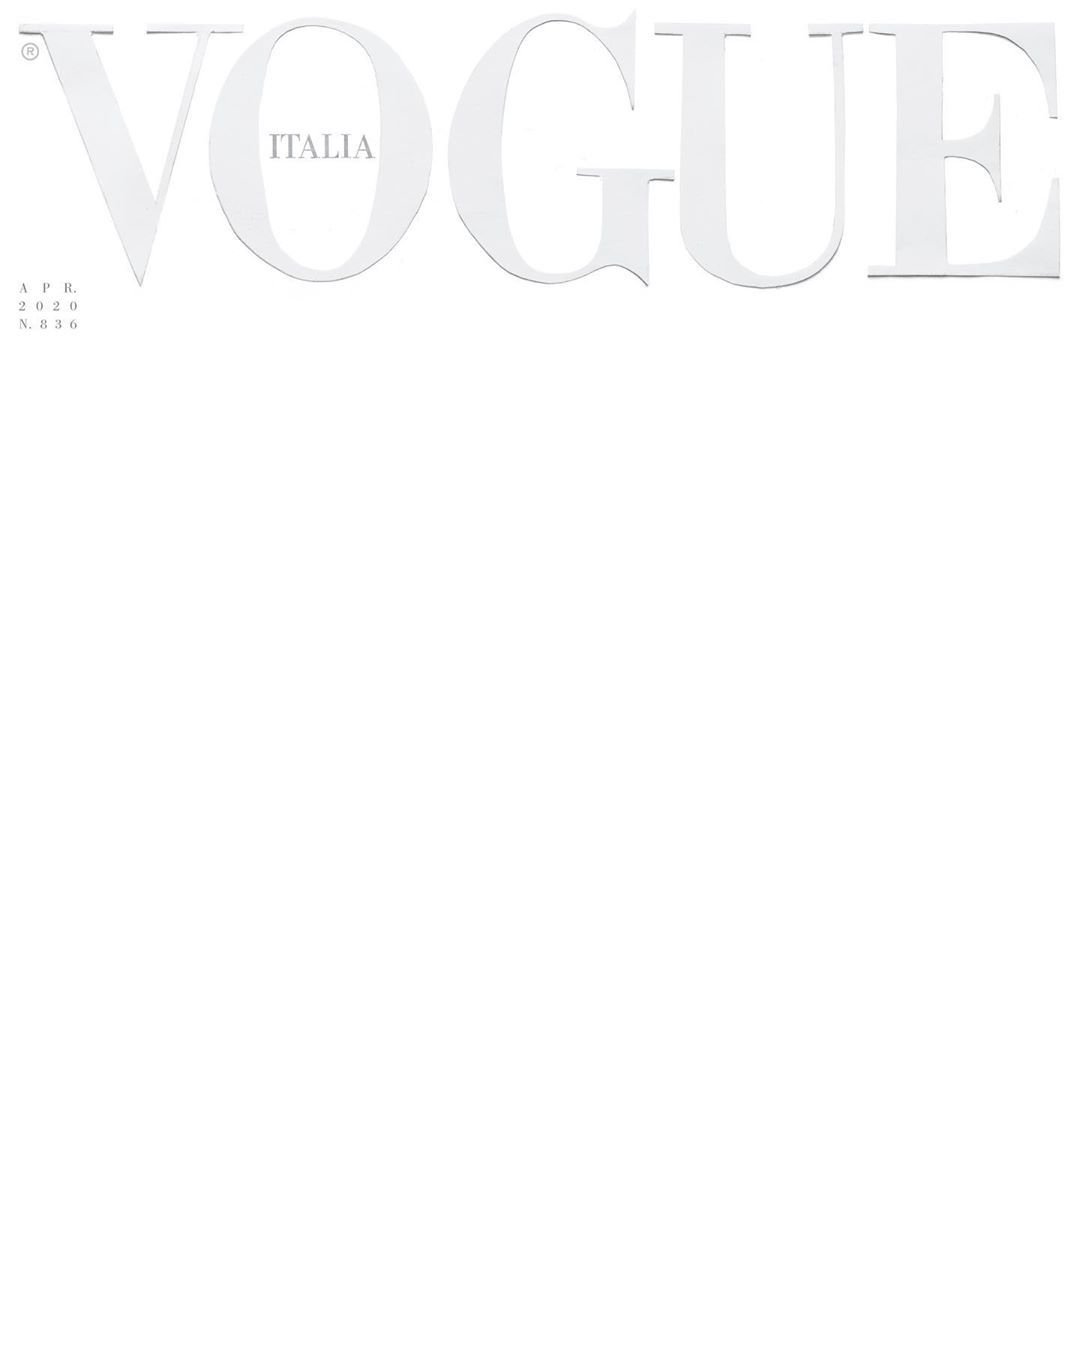 Vogue Italia' Prints Blank White Cover for April 2020 Issue